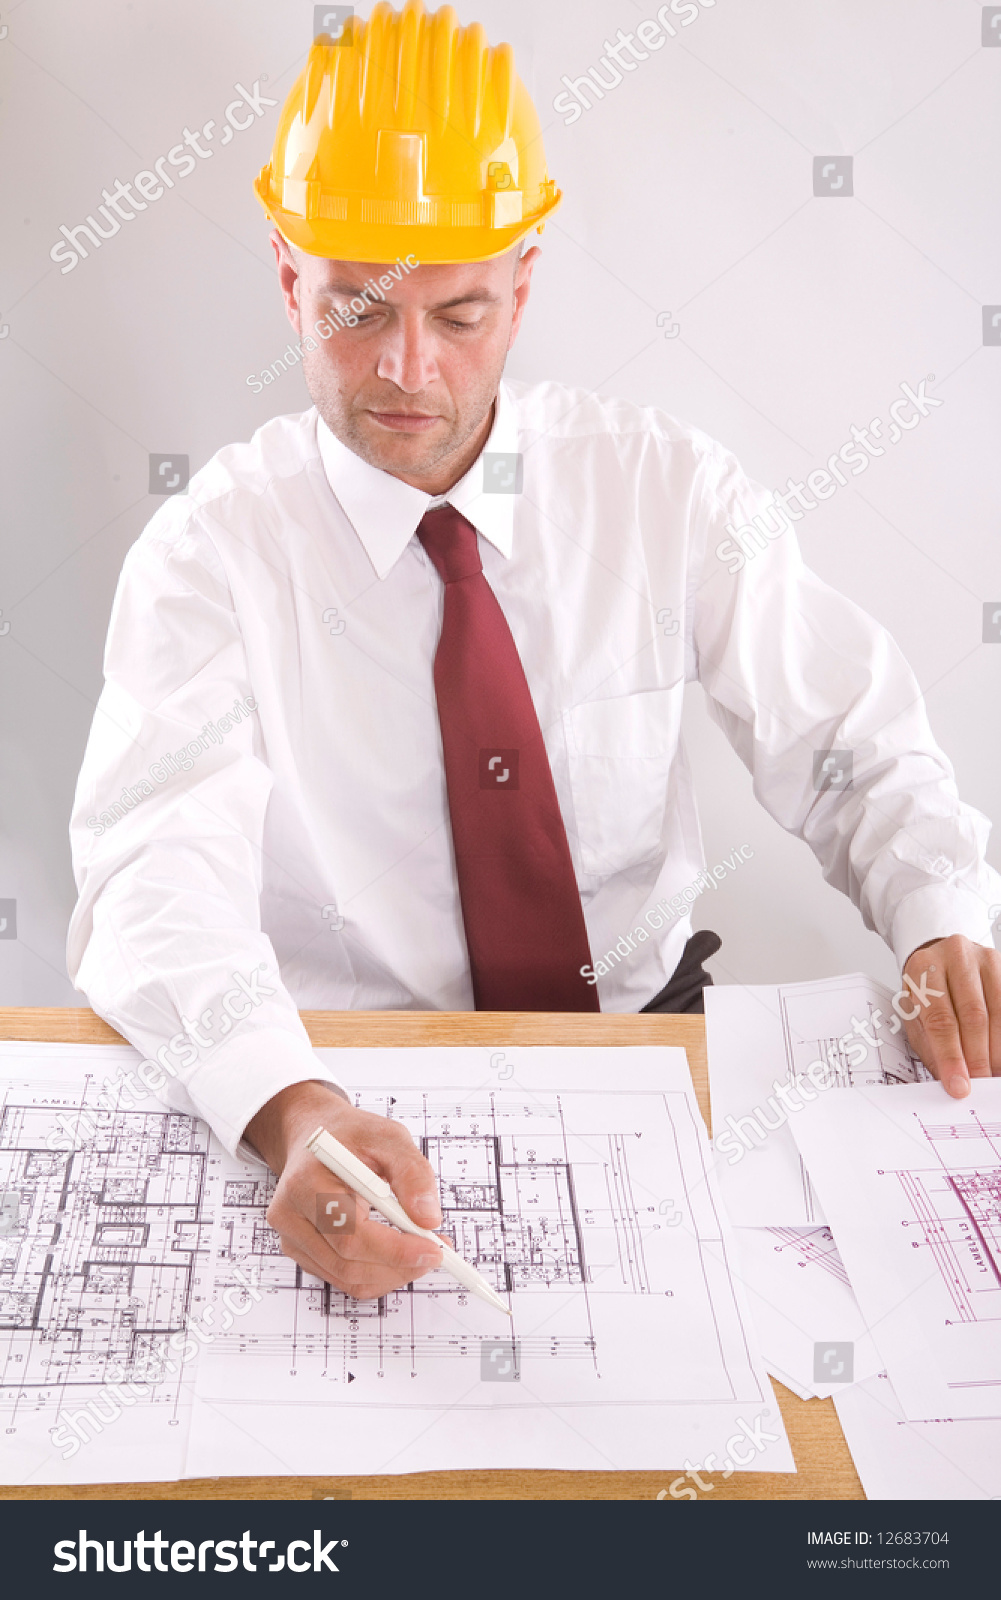 Young architect at work with blueprints stock photo for Architect at work